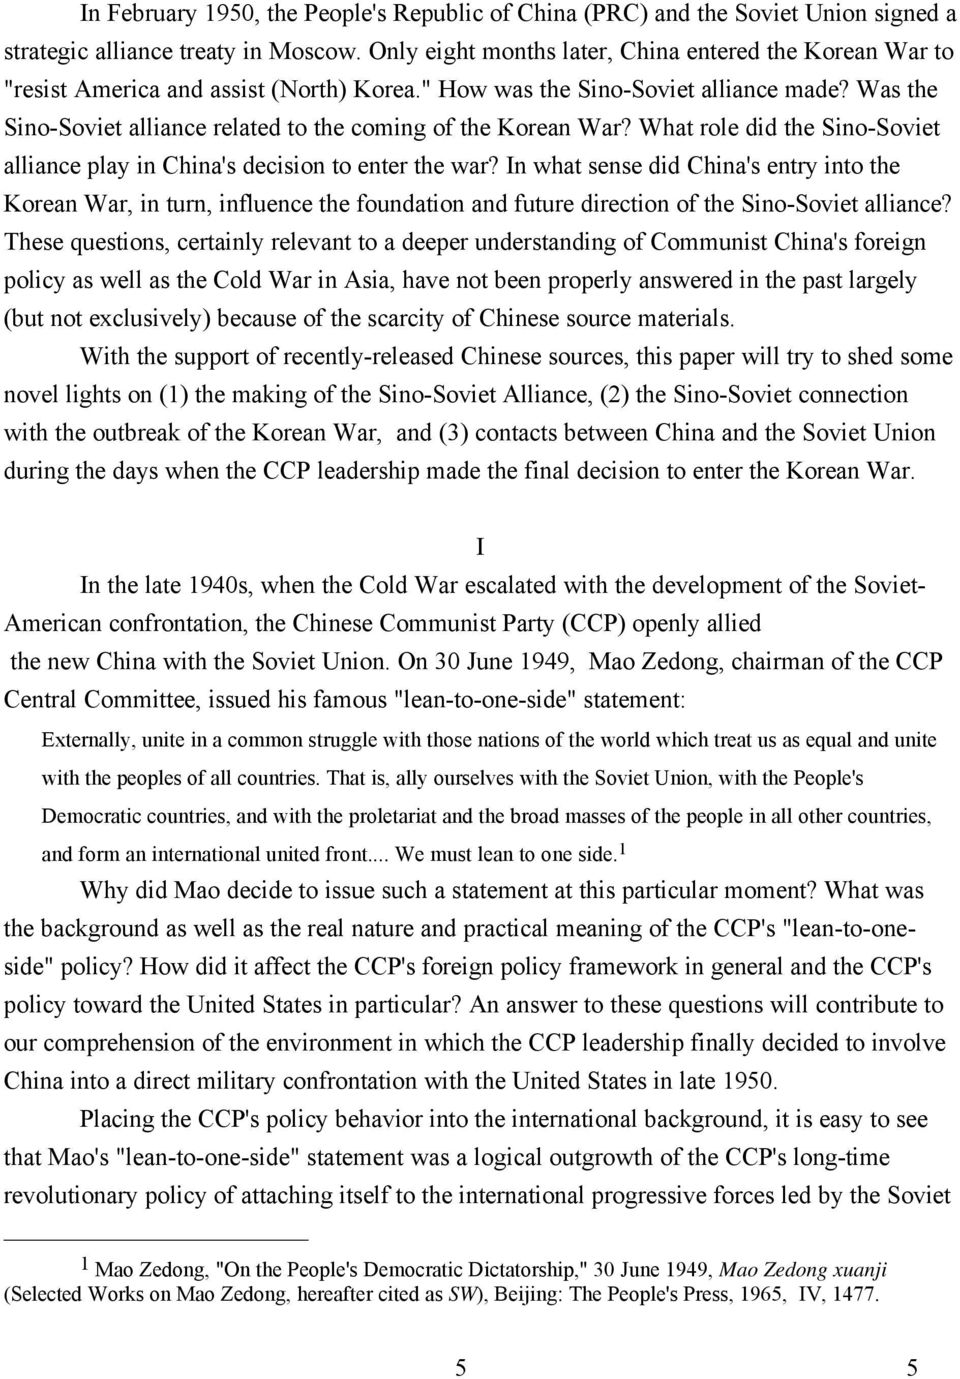 Was the Sino-Soviet alliance related to the coming of the Korean War? What role did the Sino-Soviet alliance play in China's decision to enter the war?